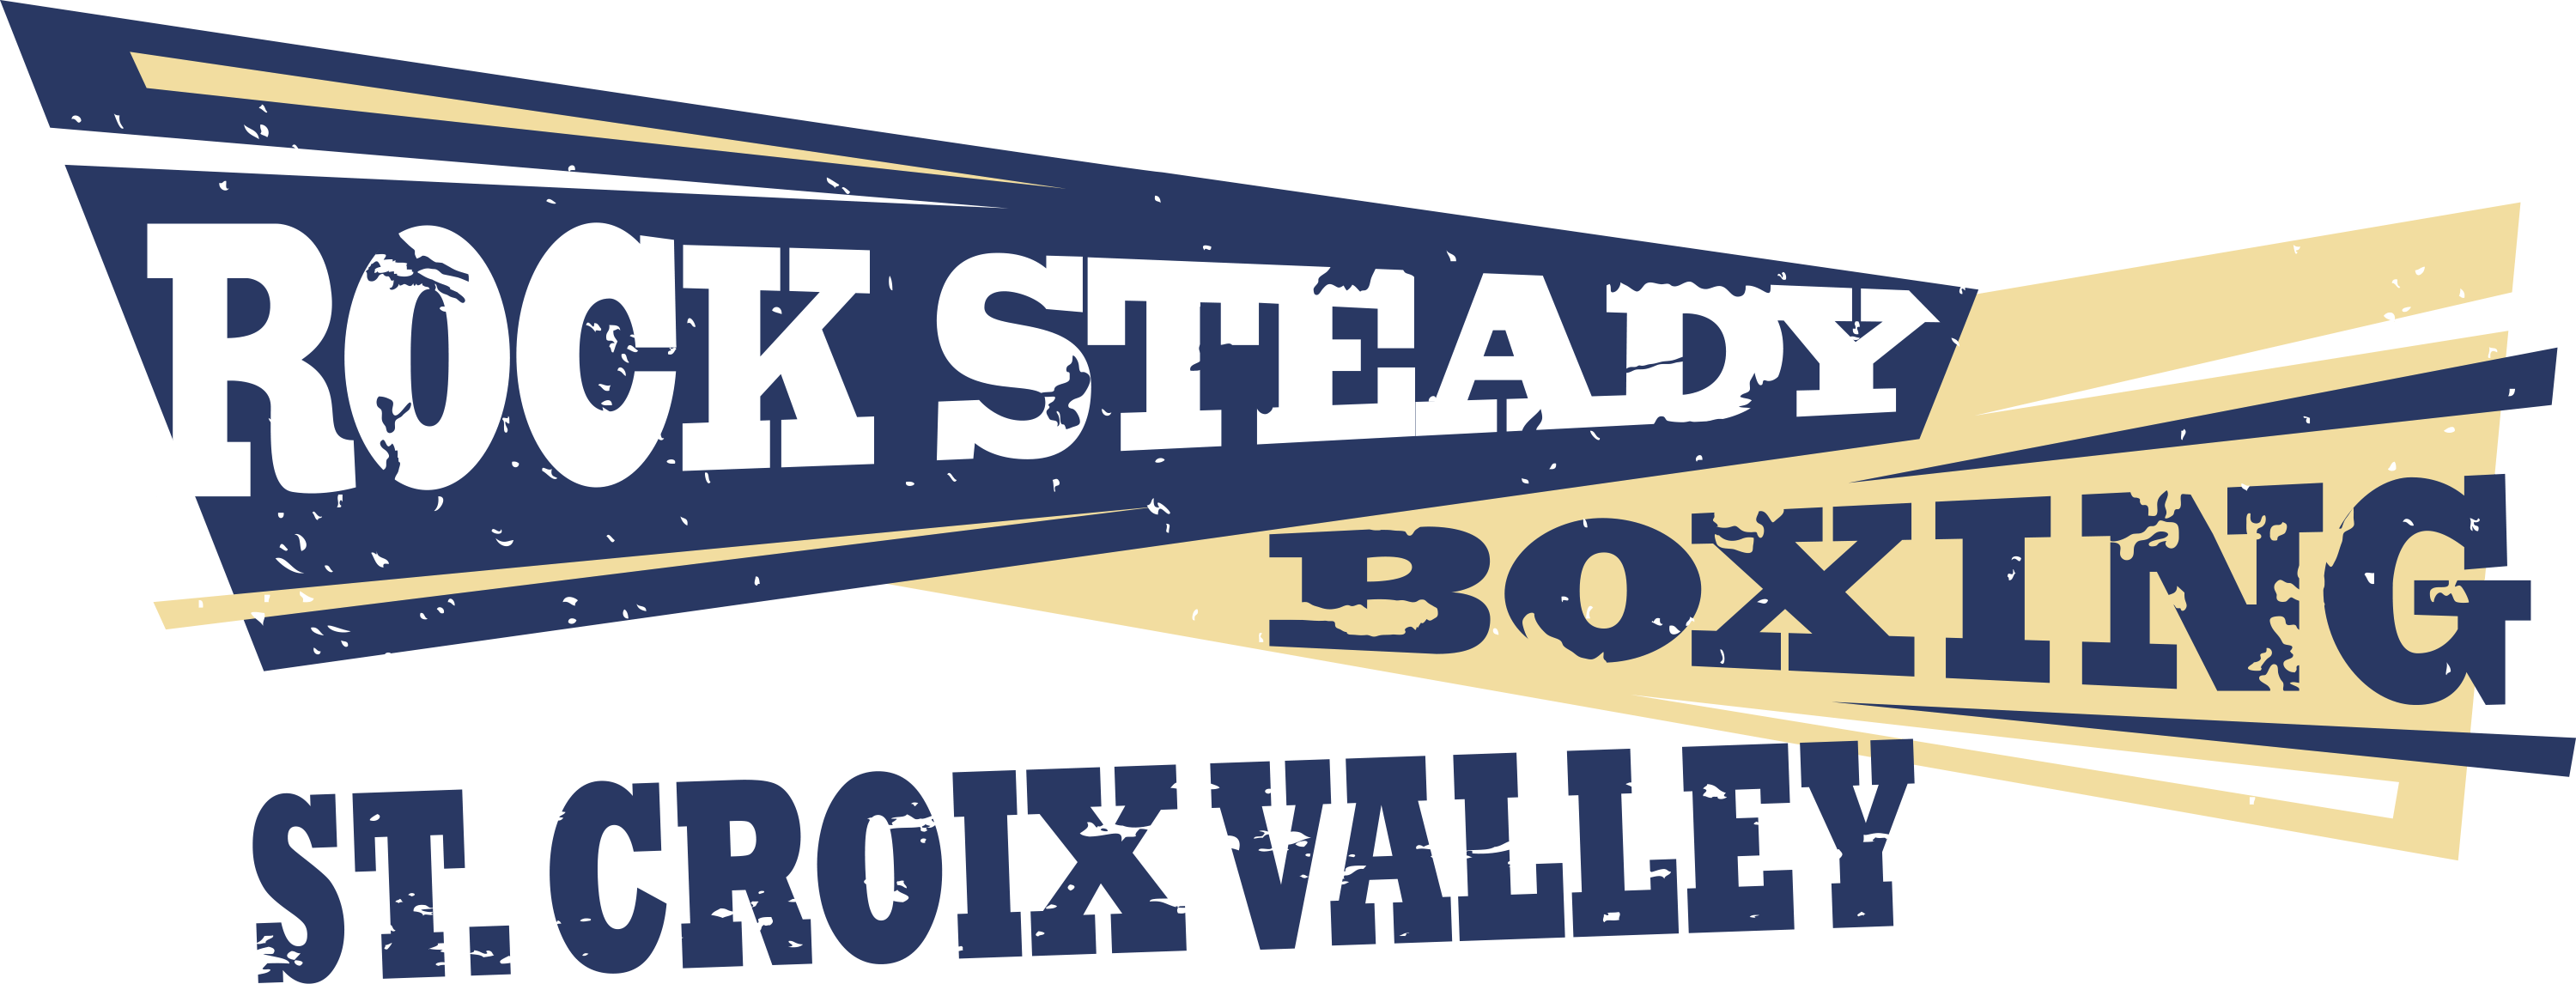 Rock Steady Boxing - St. Croix Valley